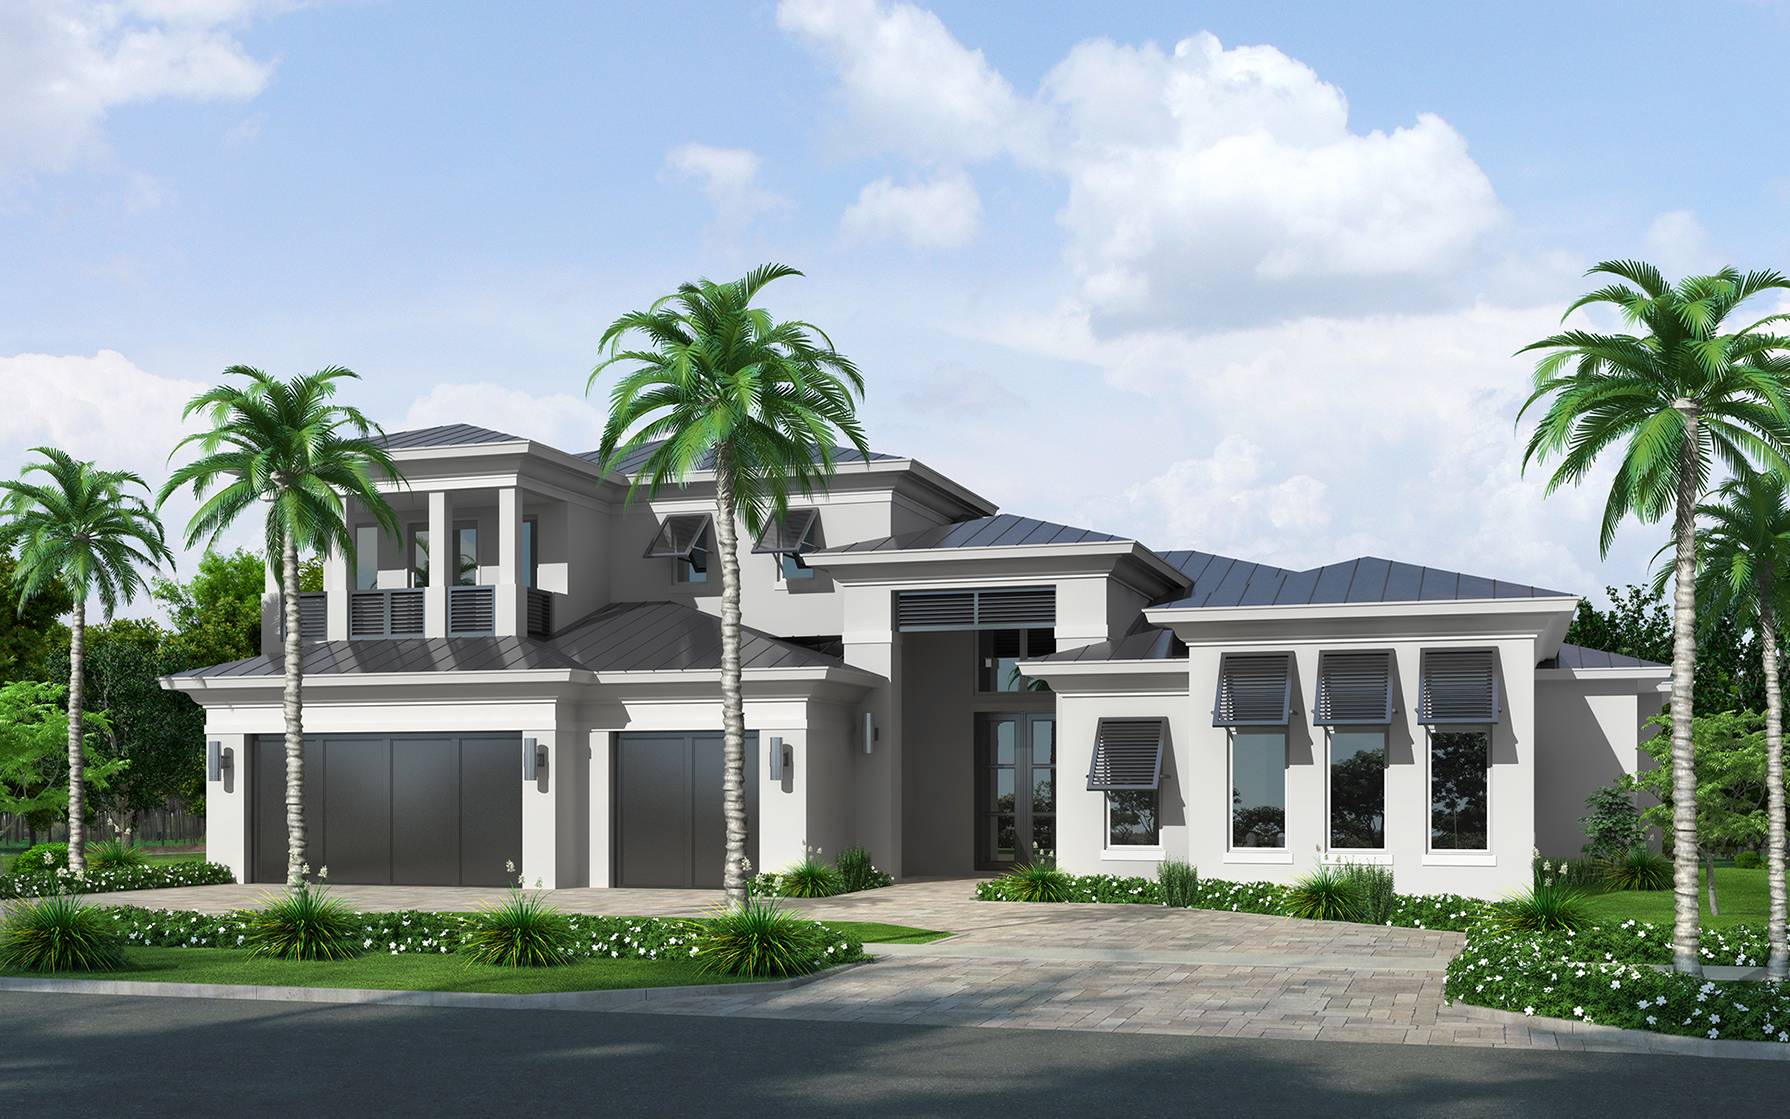 What South Florida custom home building can do for you